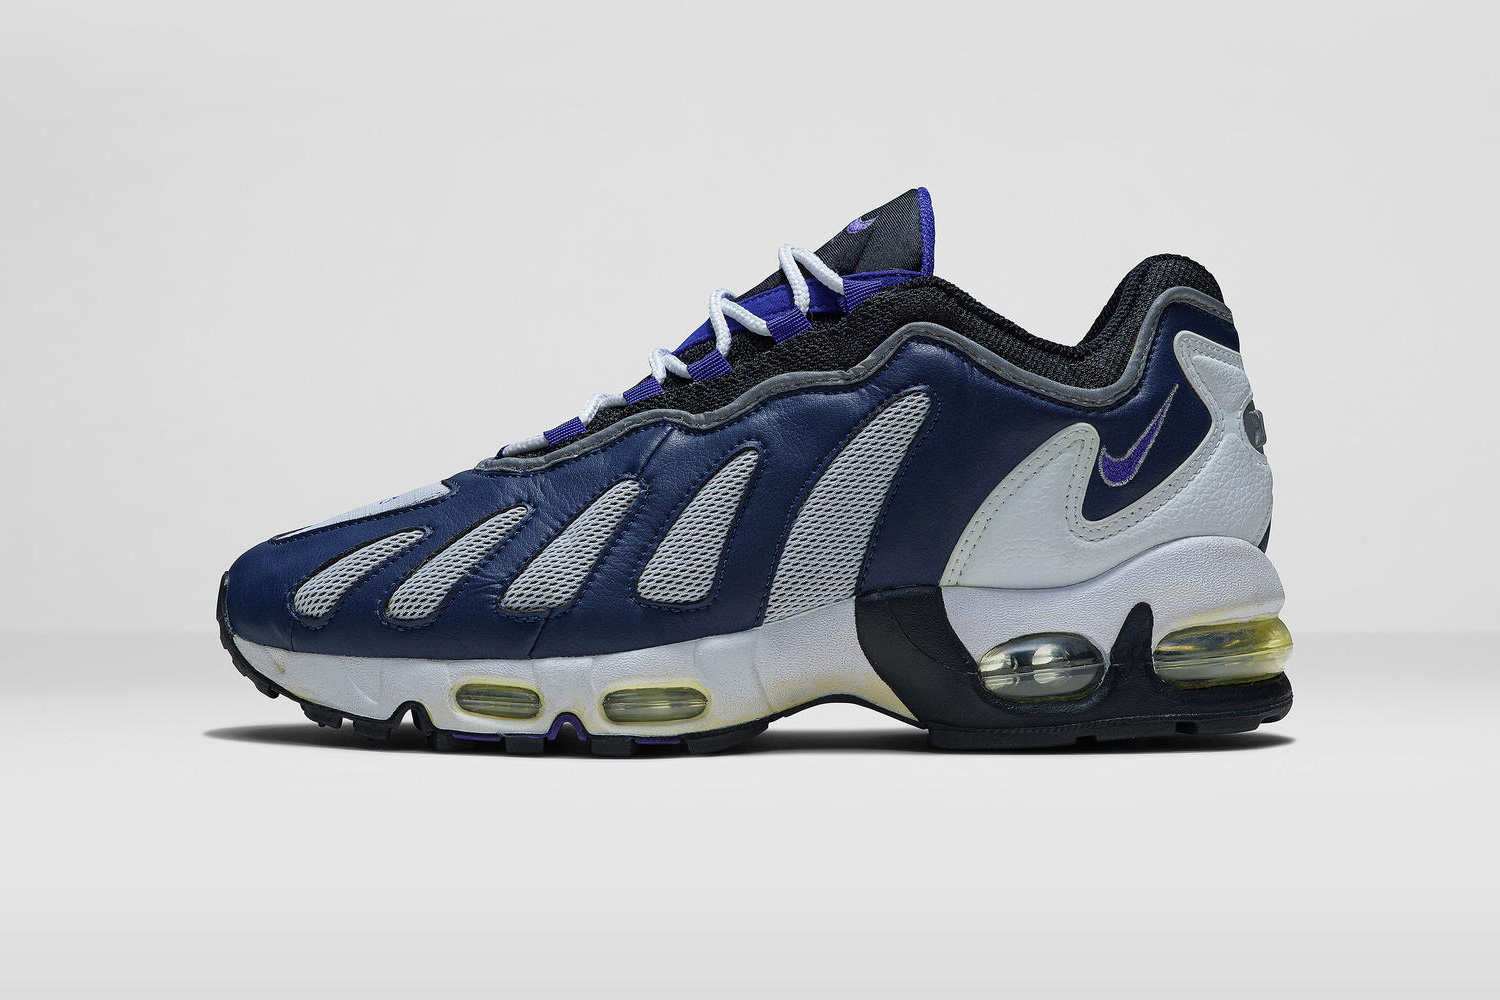 Nike Air Max Archive Highsnobiety delicate - ramseyequipment.com 9995662a9